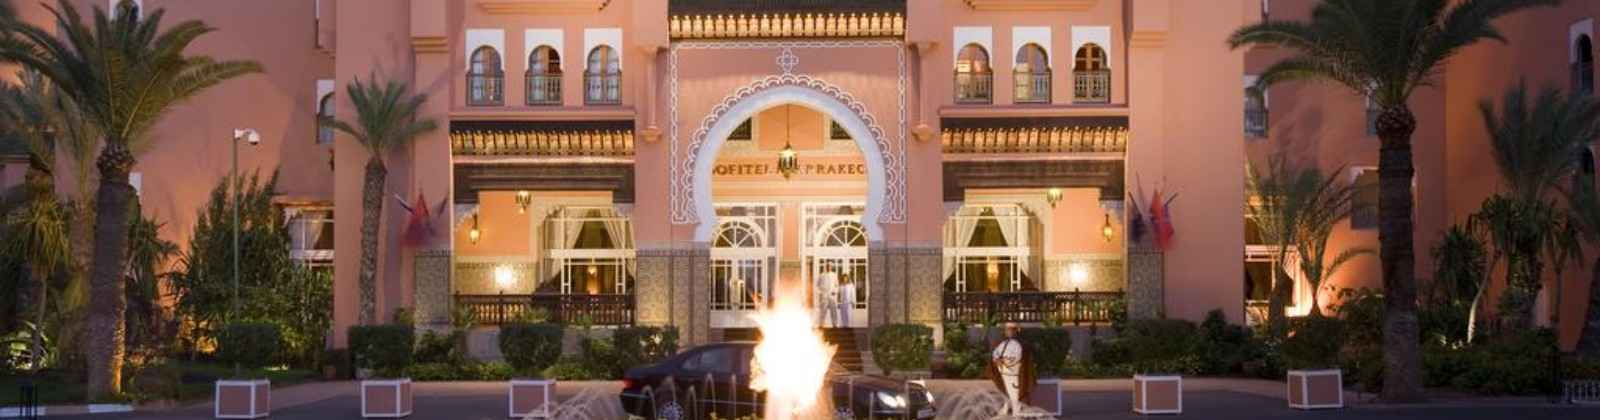 sofitel marrakech palais imperial olevene booking